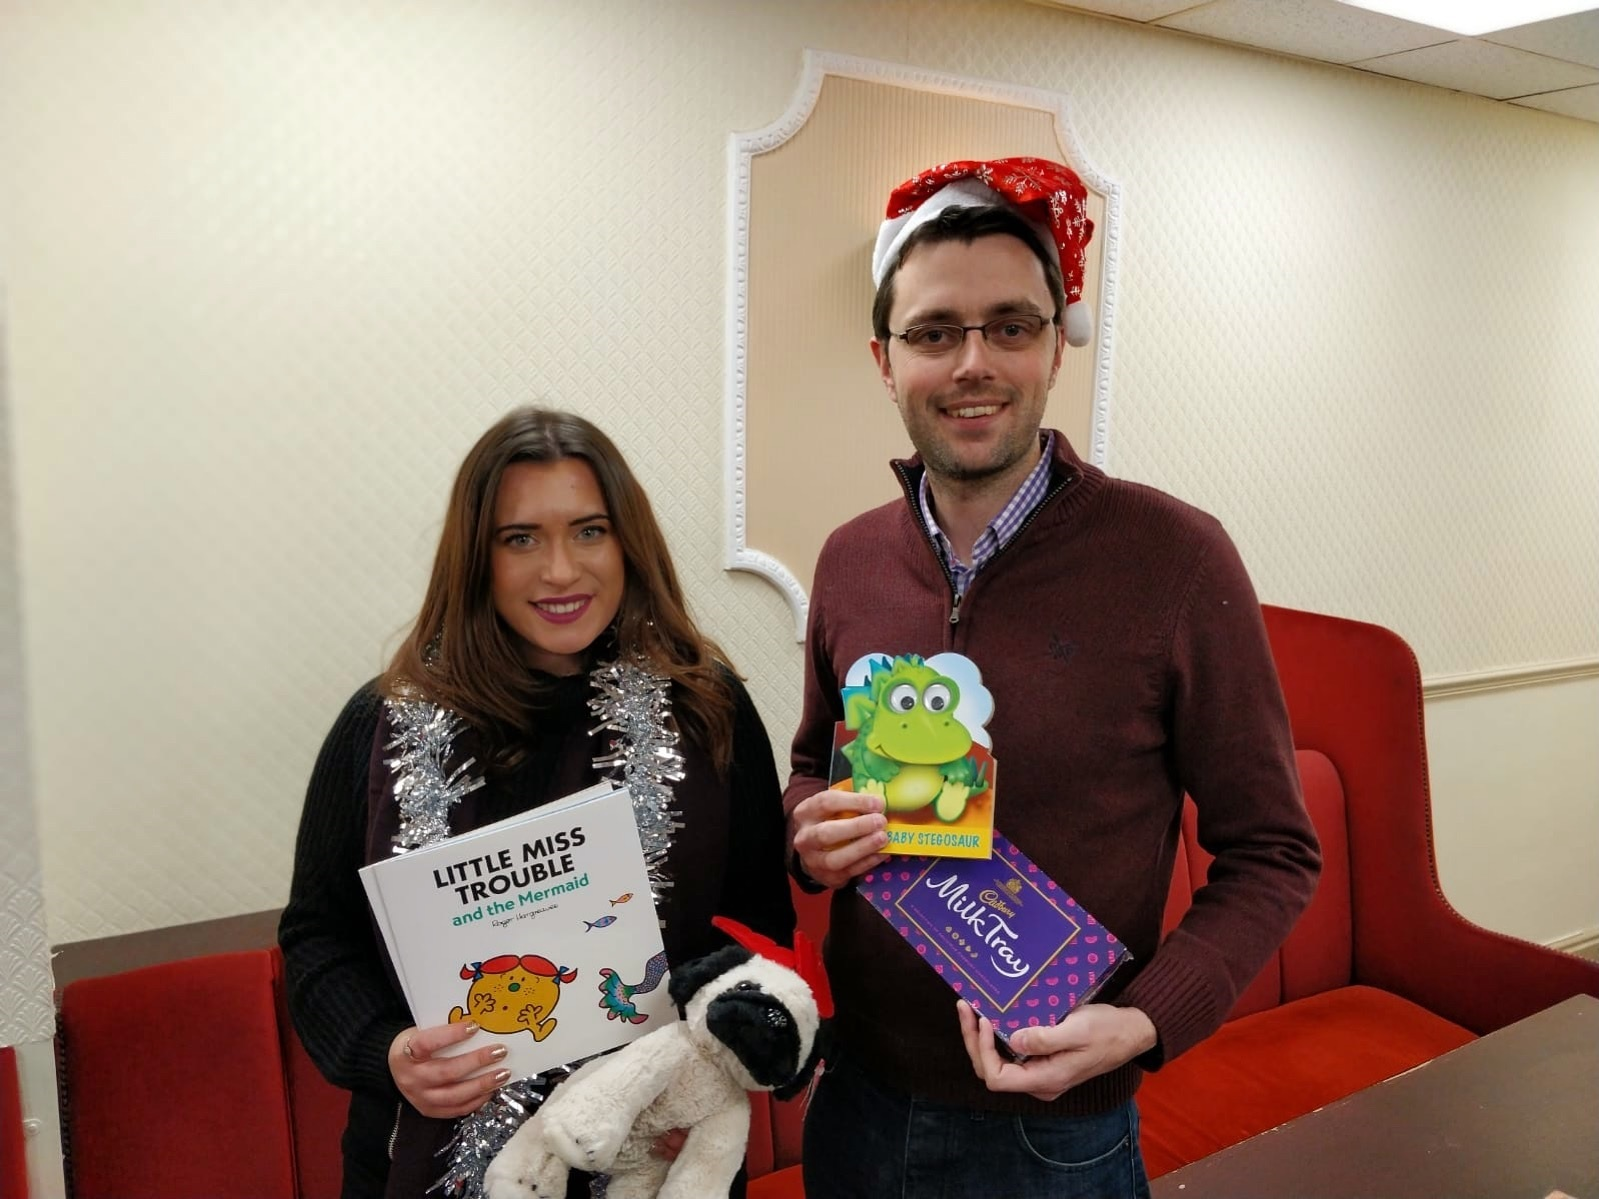 Kingswinford North and Wall Heath Councillors Nicola Richards and Ed Lawrence have launched a Christmas appeal for vulnerable Dudley residents.